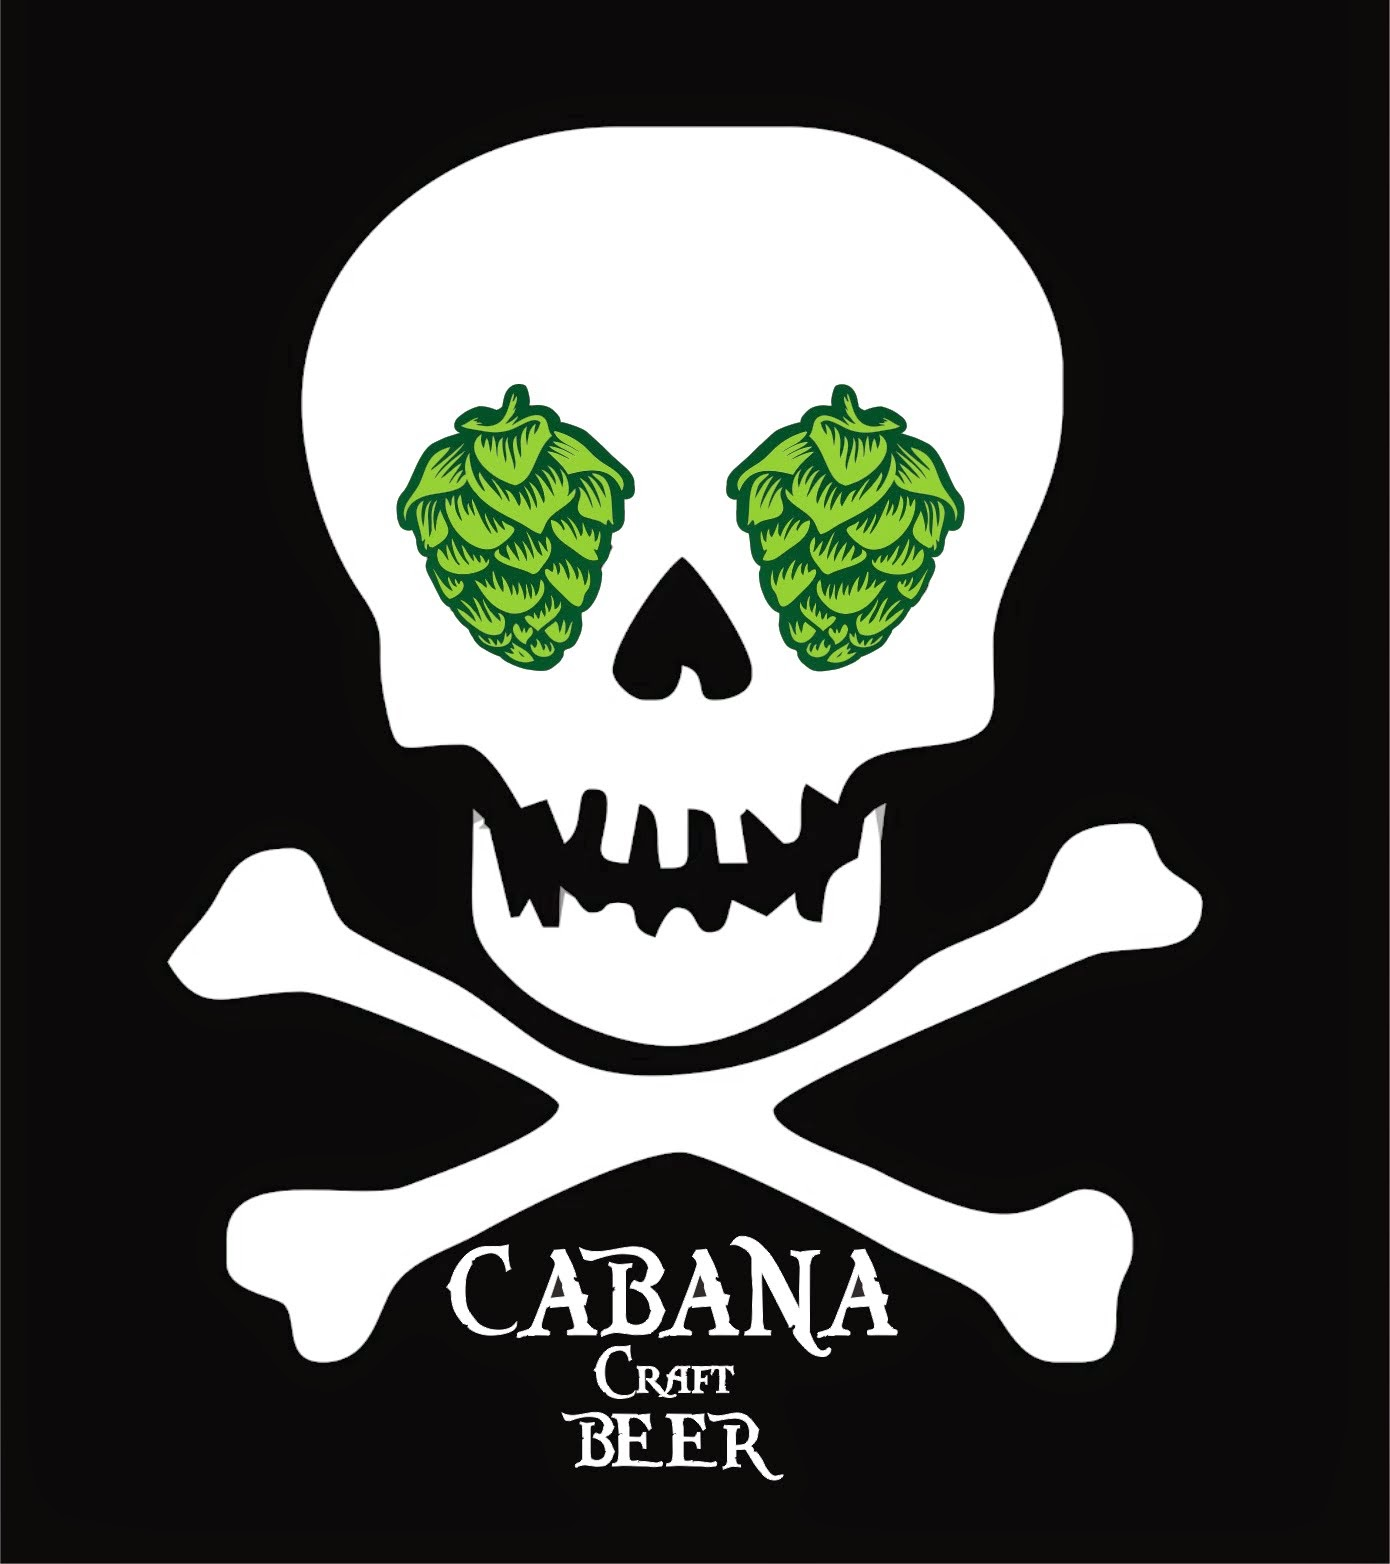 CABANA CRAFT BEER